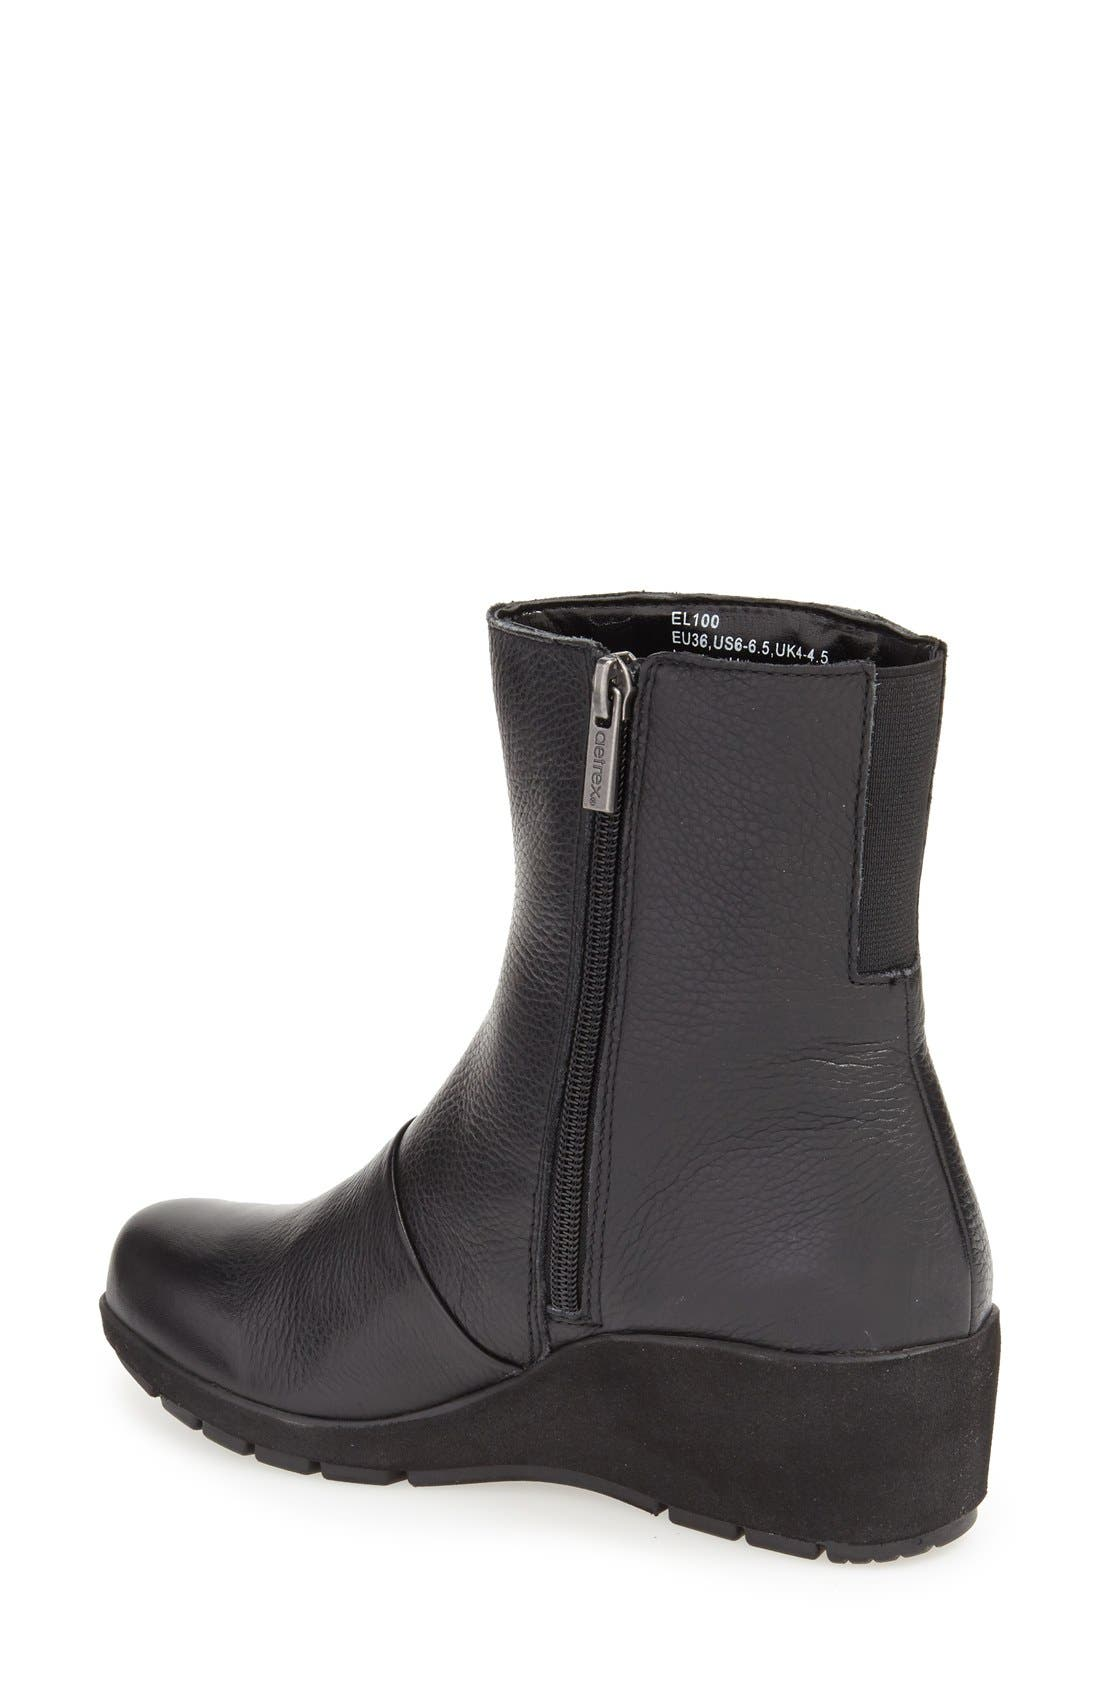 'Jane' Wedge Bootie,                             Alternate thumbnail 2, color,                             Black Leather